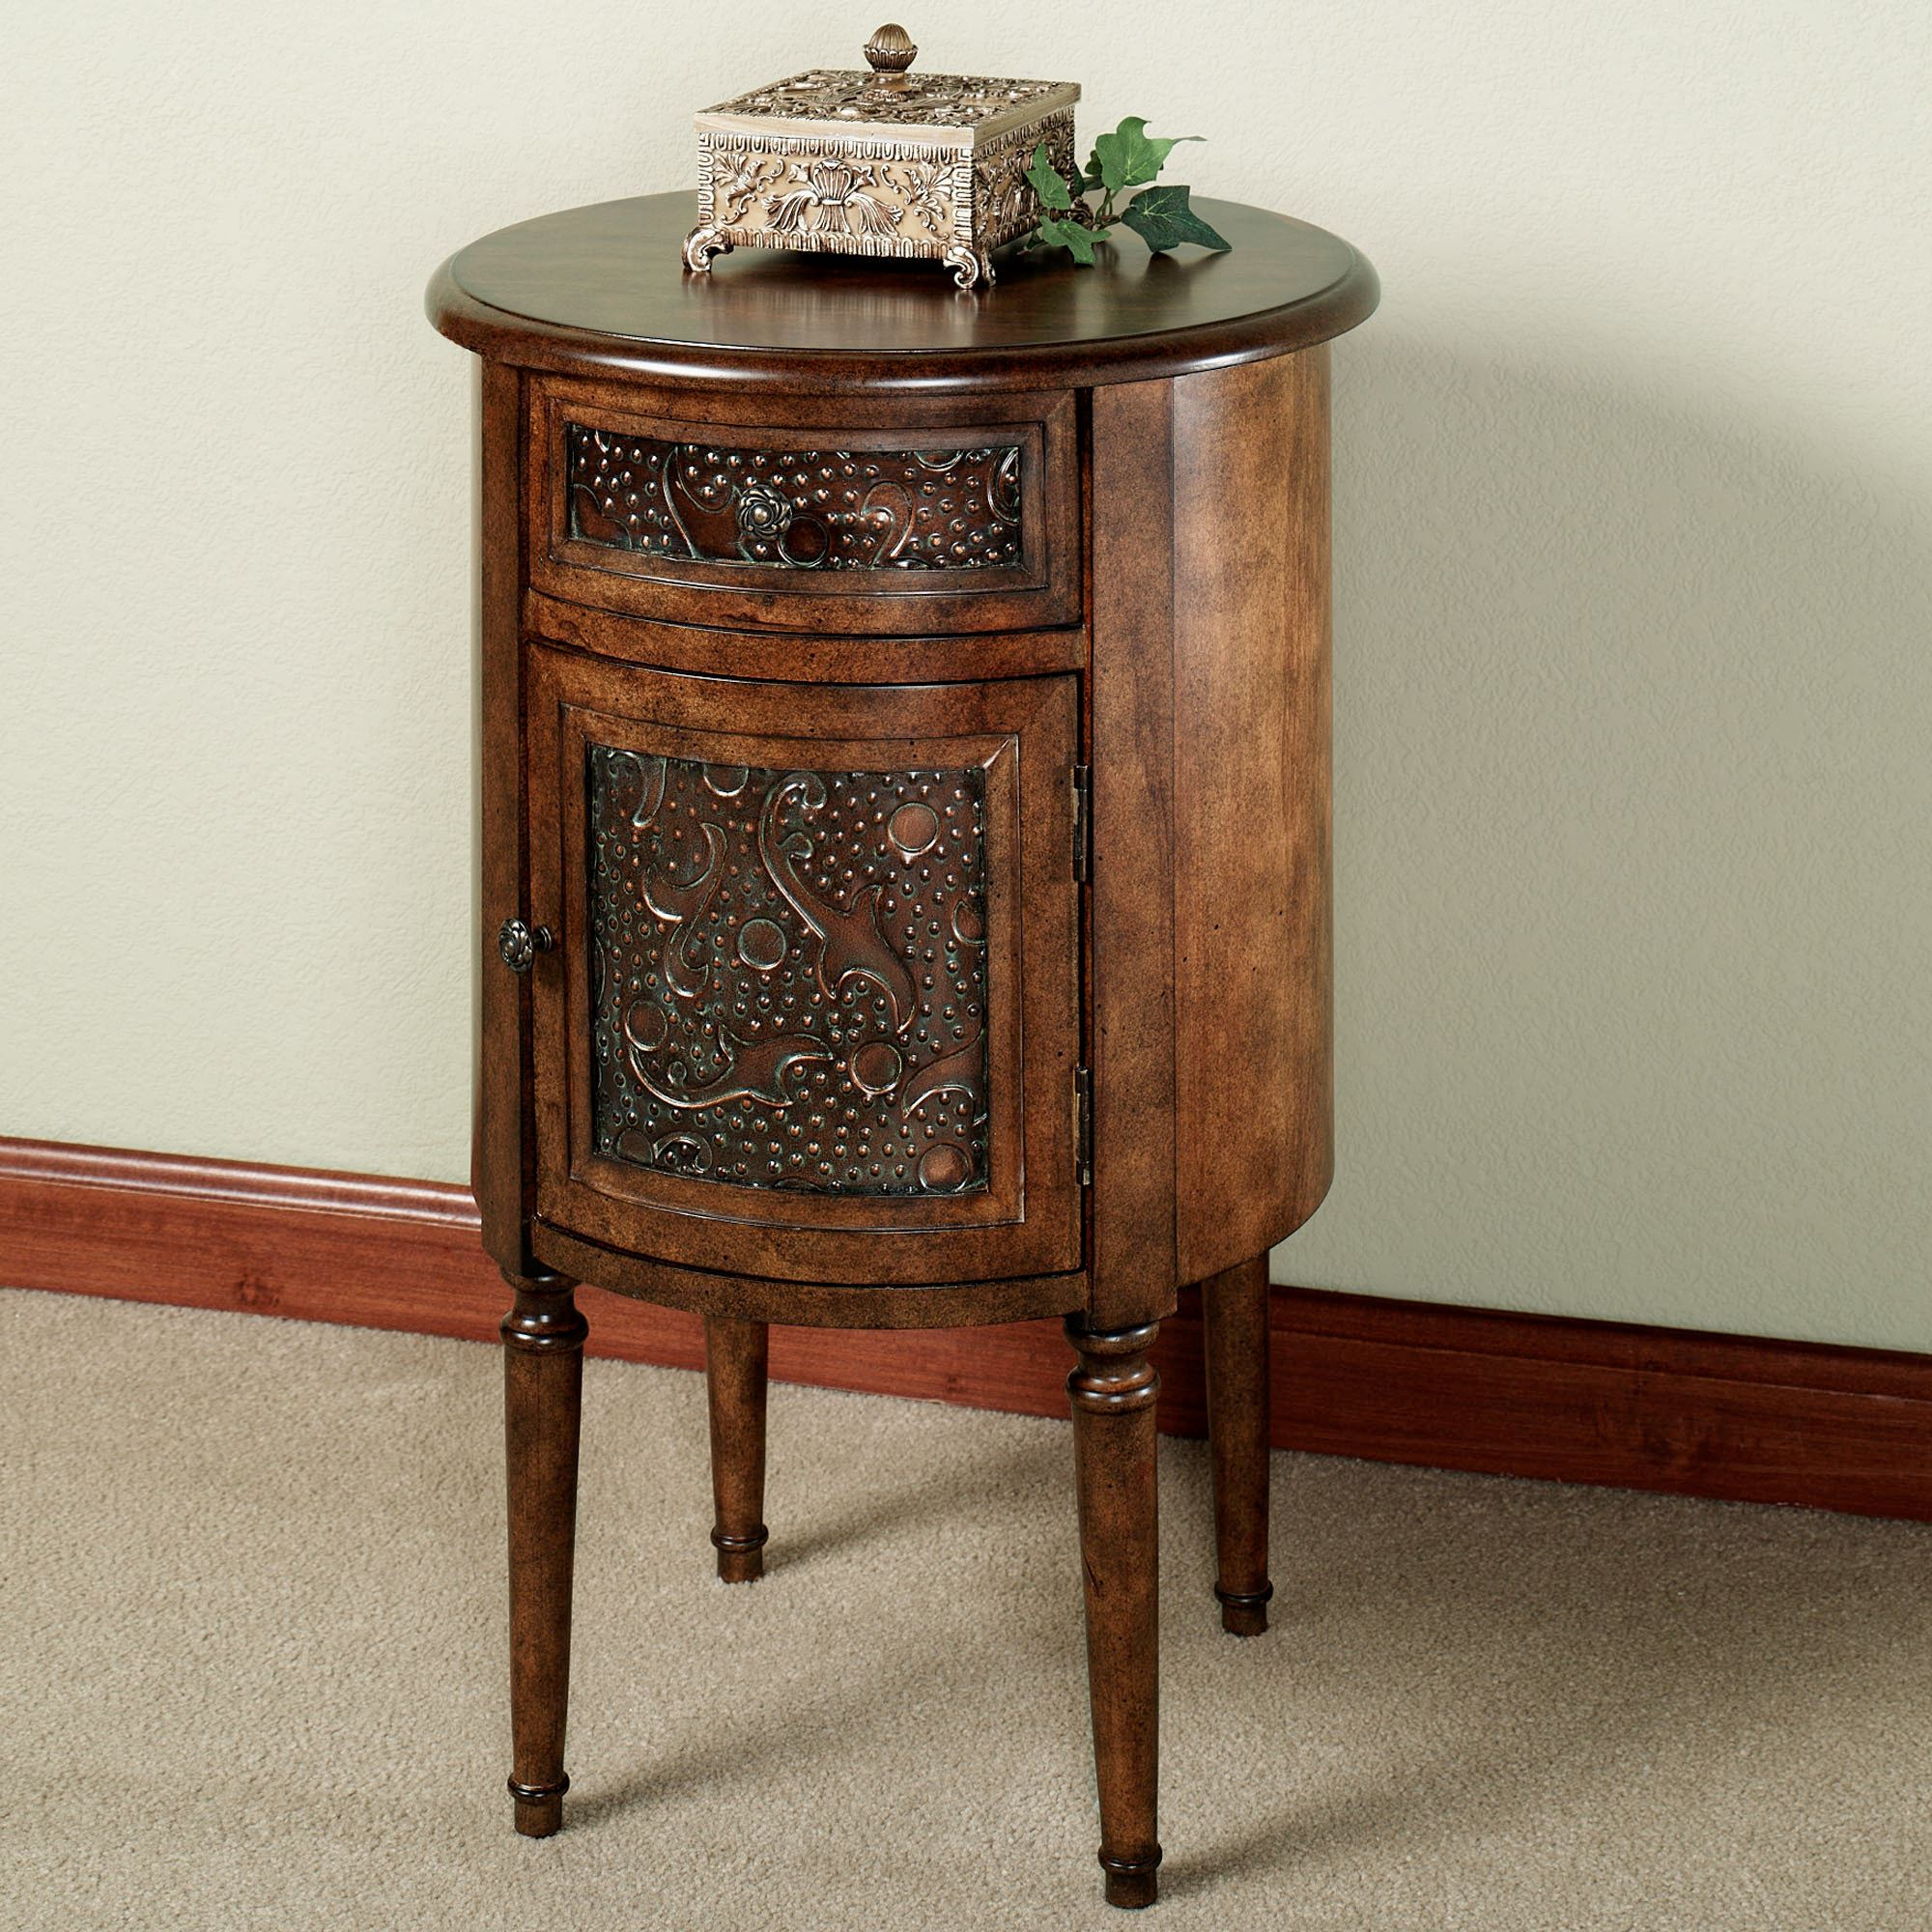 lombardy round storage accent table corner with english walnut touch zoom foyer chest furniture dinner decor ideas side for living room contemporary toronto wicker patio coffee